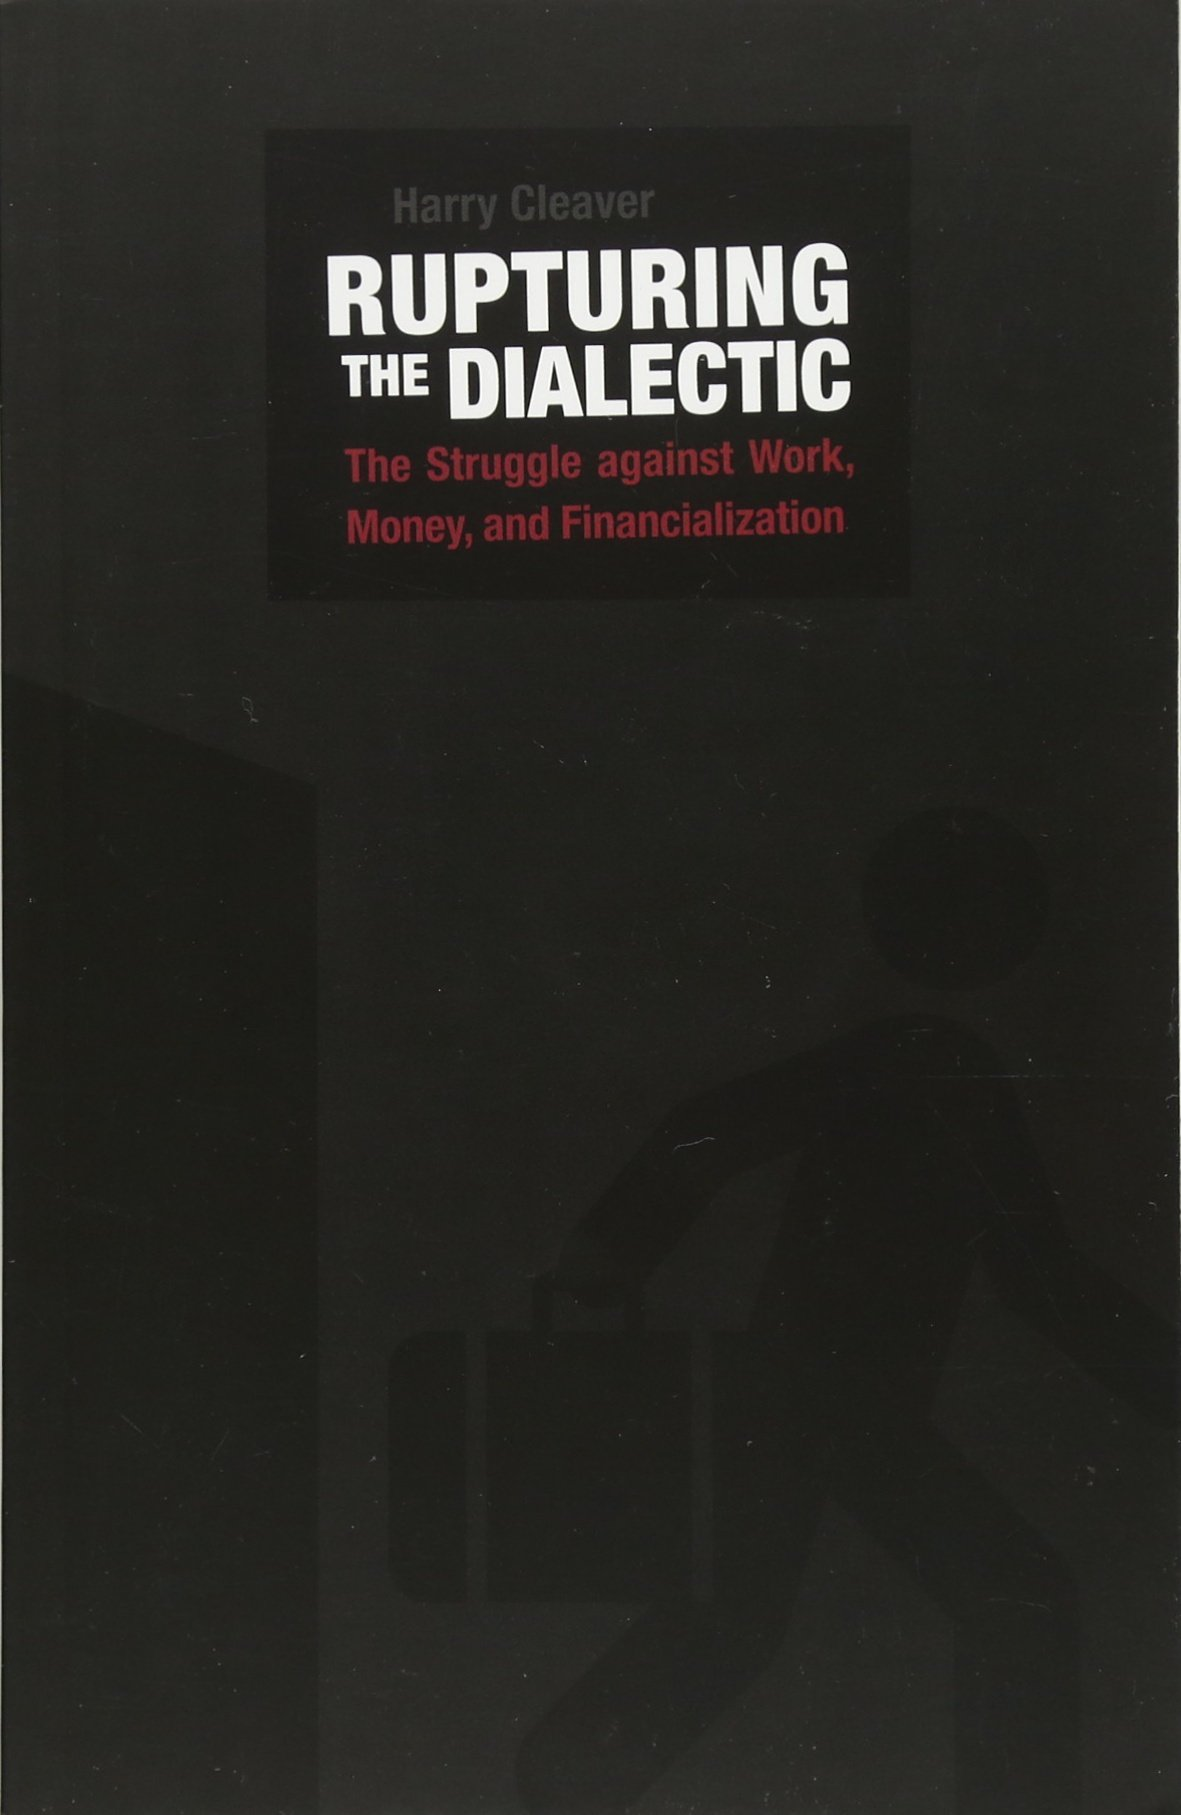 Download Rupturing the Dialectic: The Struggle against Work, Money, and Financialization PDF